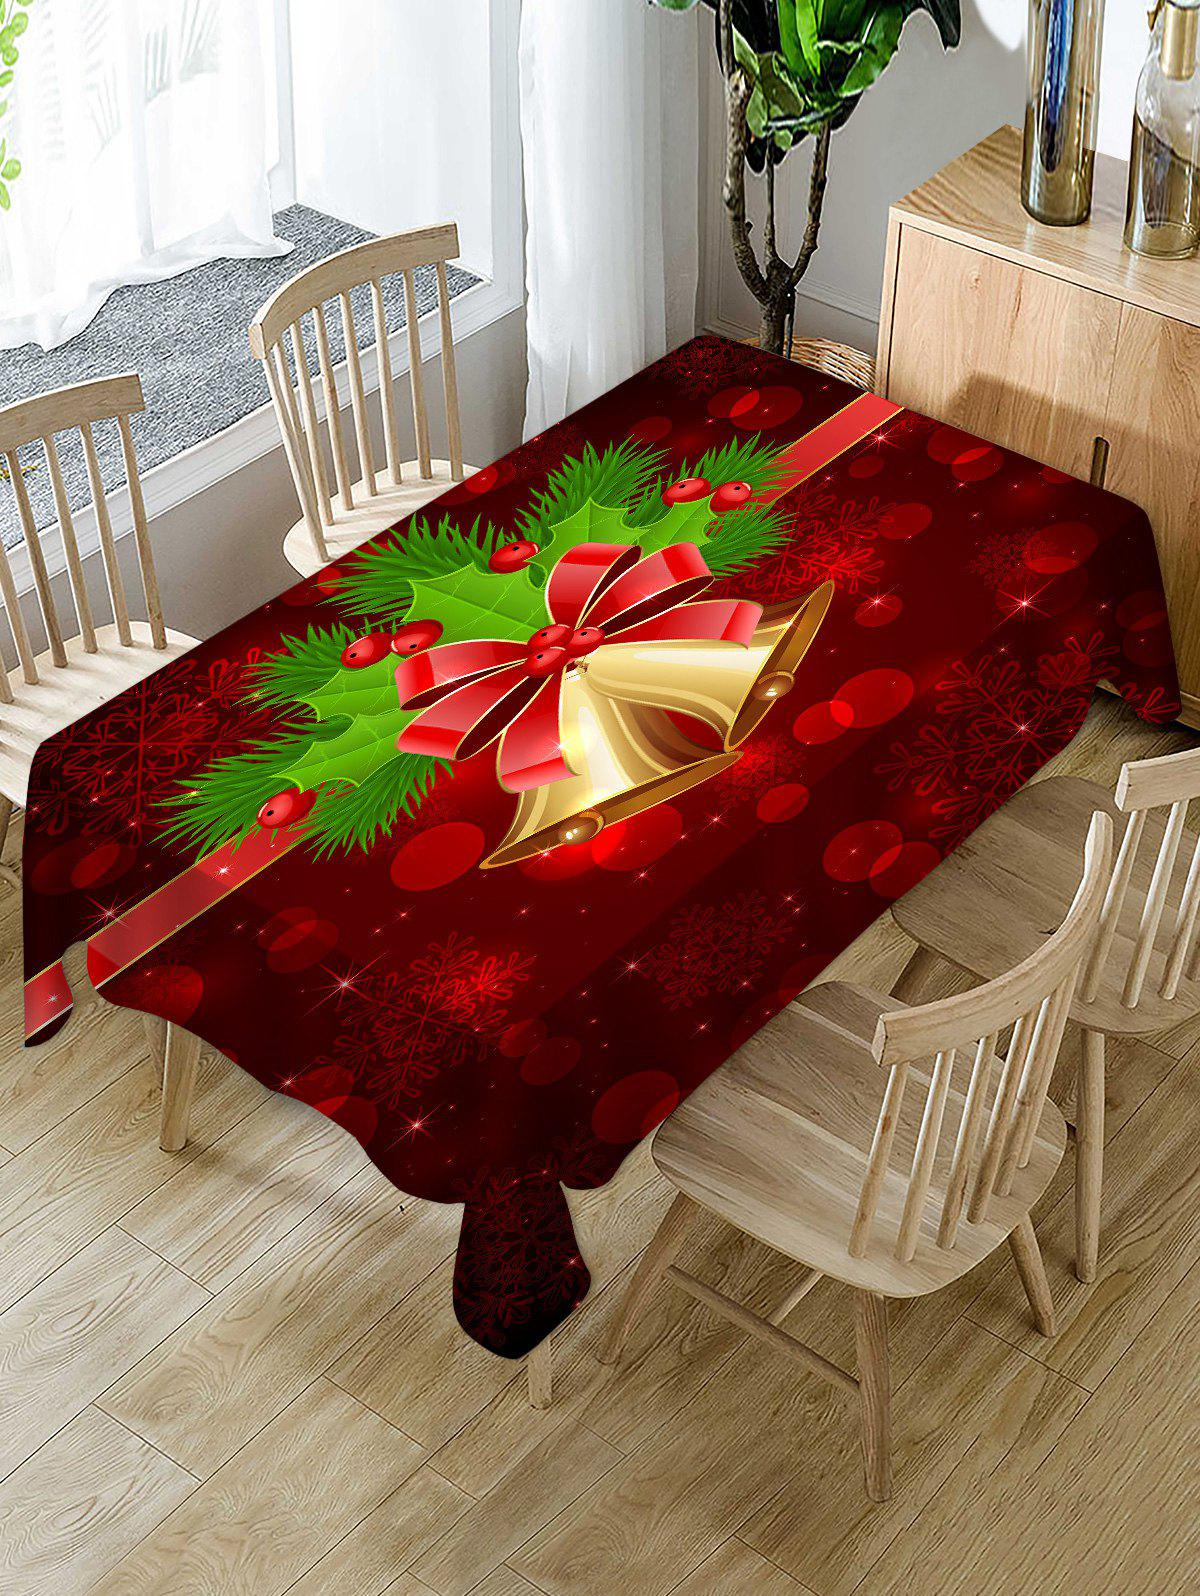 Christmas Bells Berry Print Waterproof Fabric Tablecloth - multicolor 55 X 71 INCH